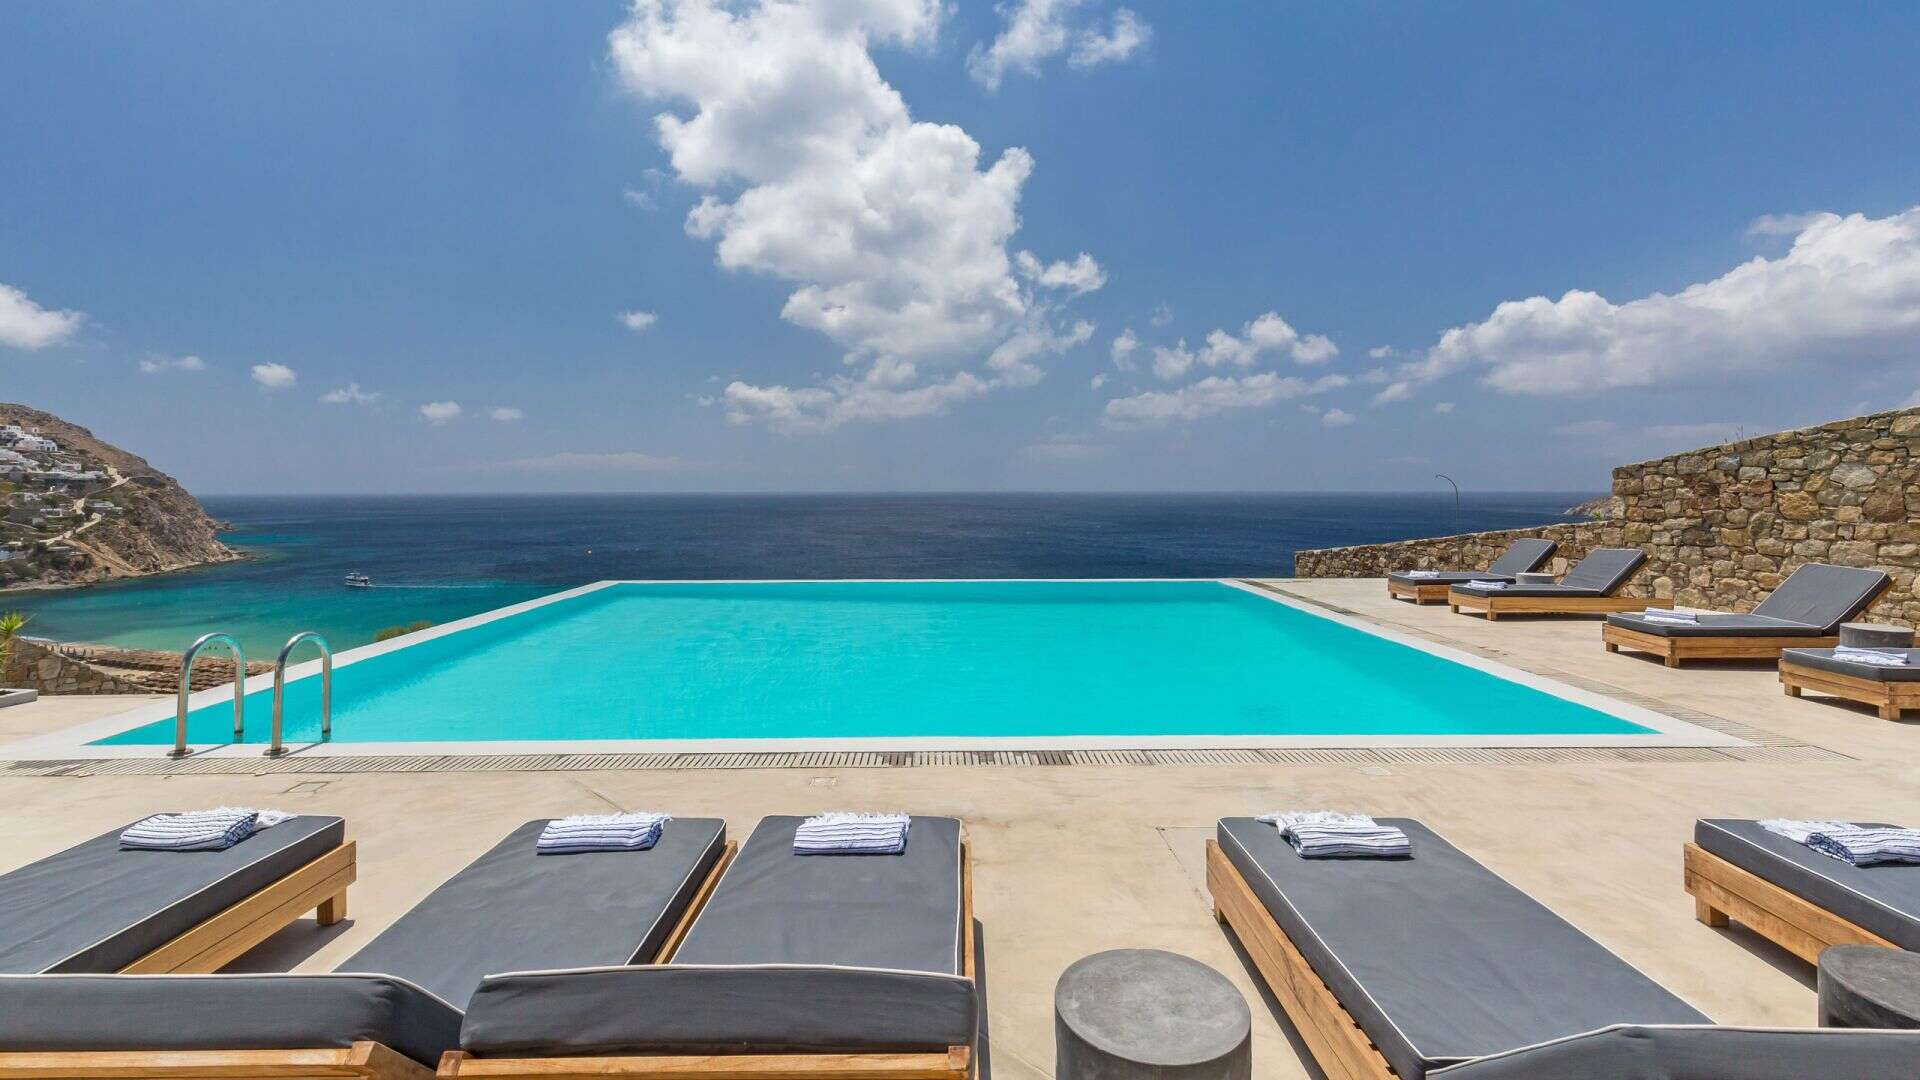 Luxury vacation rentals europe - Greece - Mykonos - Elia - Nouvelle - Image 1/19